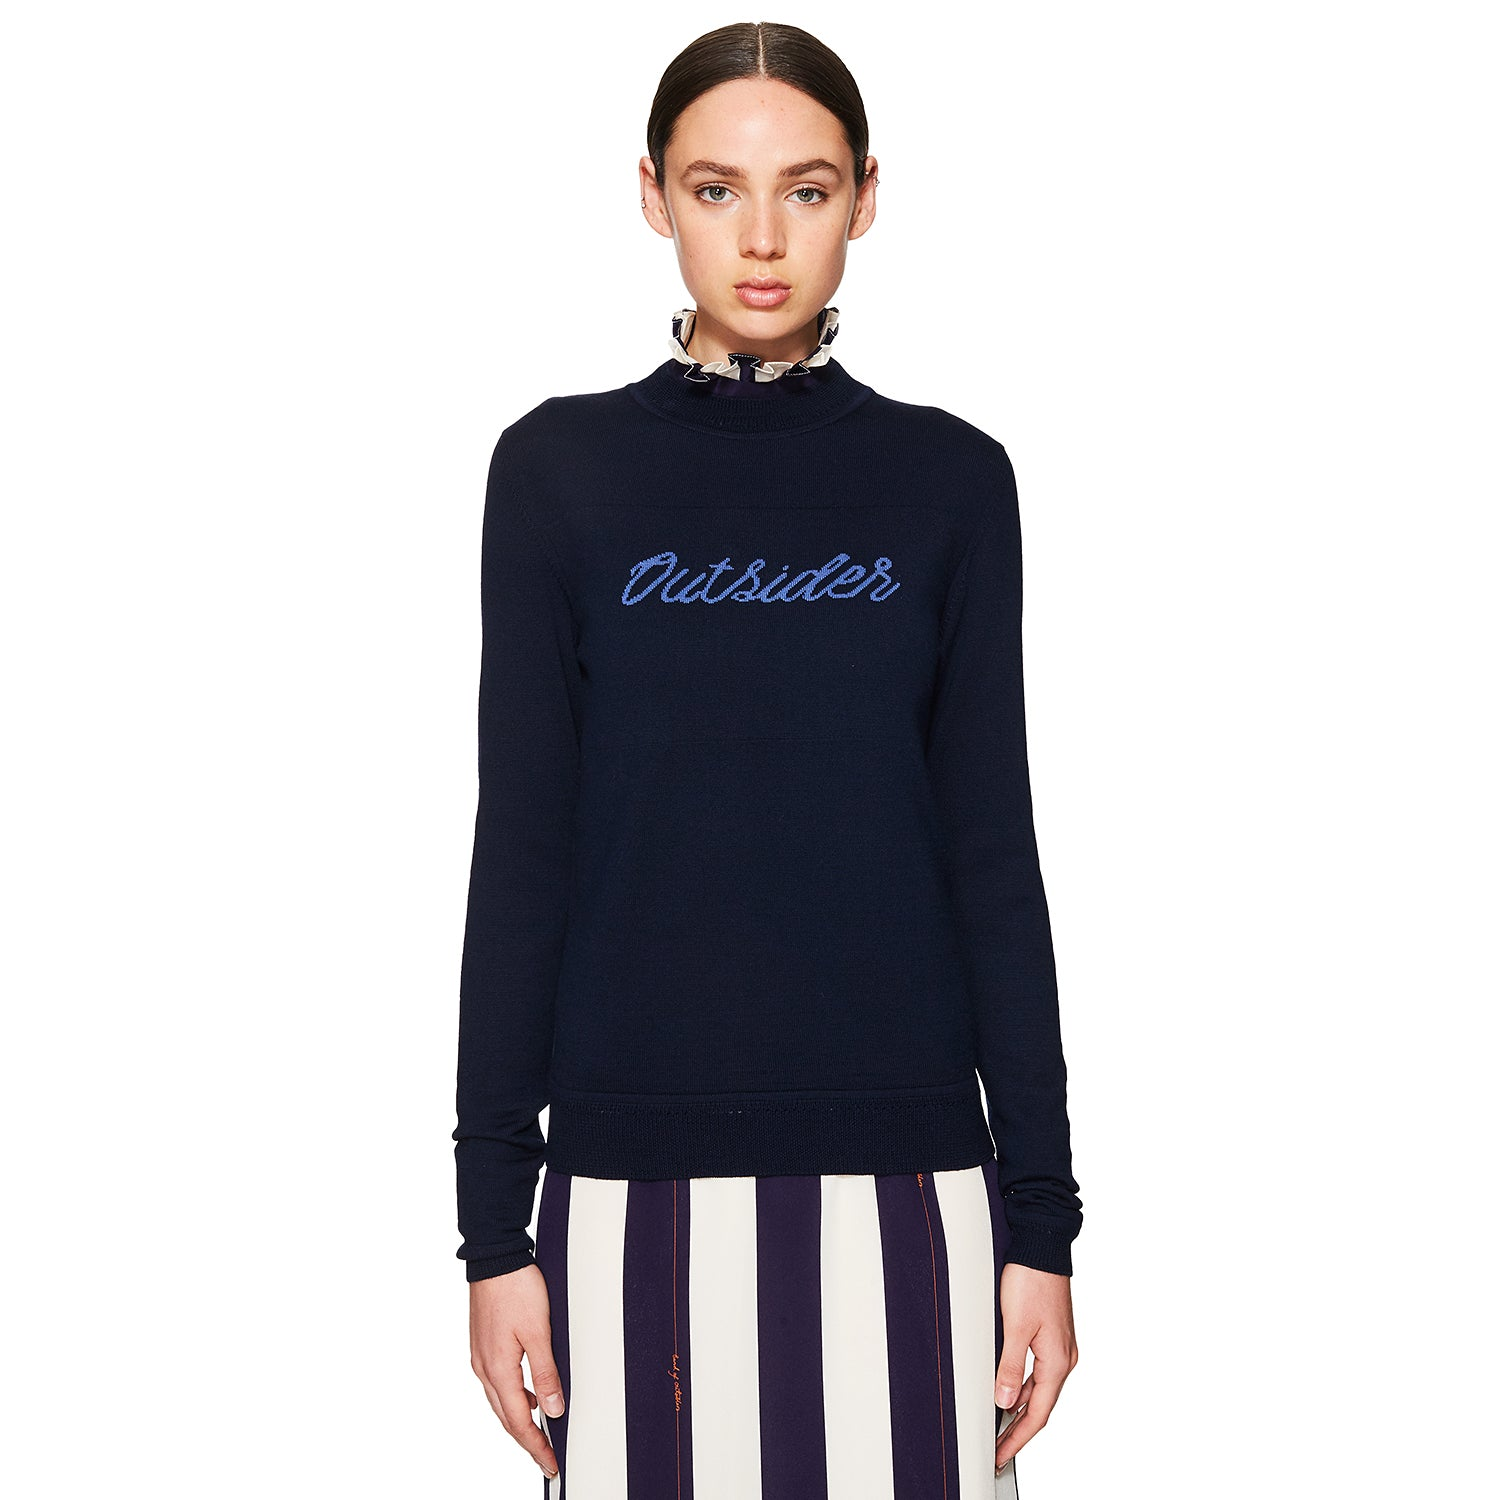 Outsider Jumper Navy